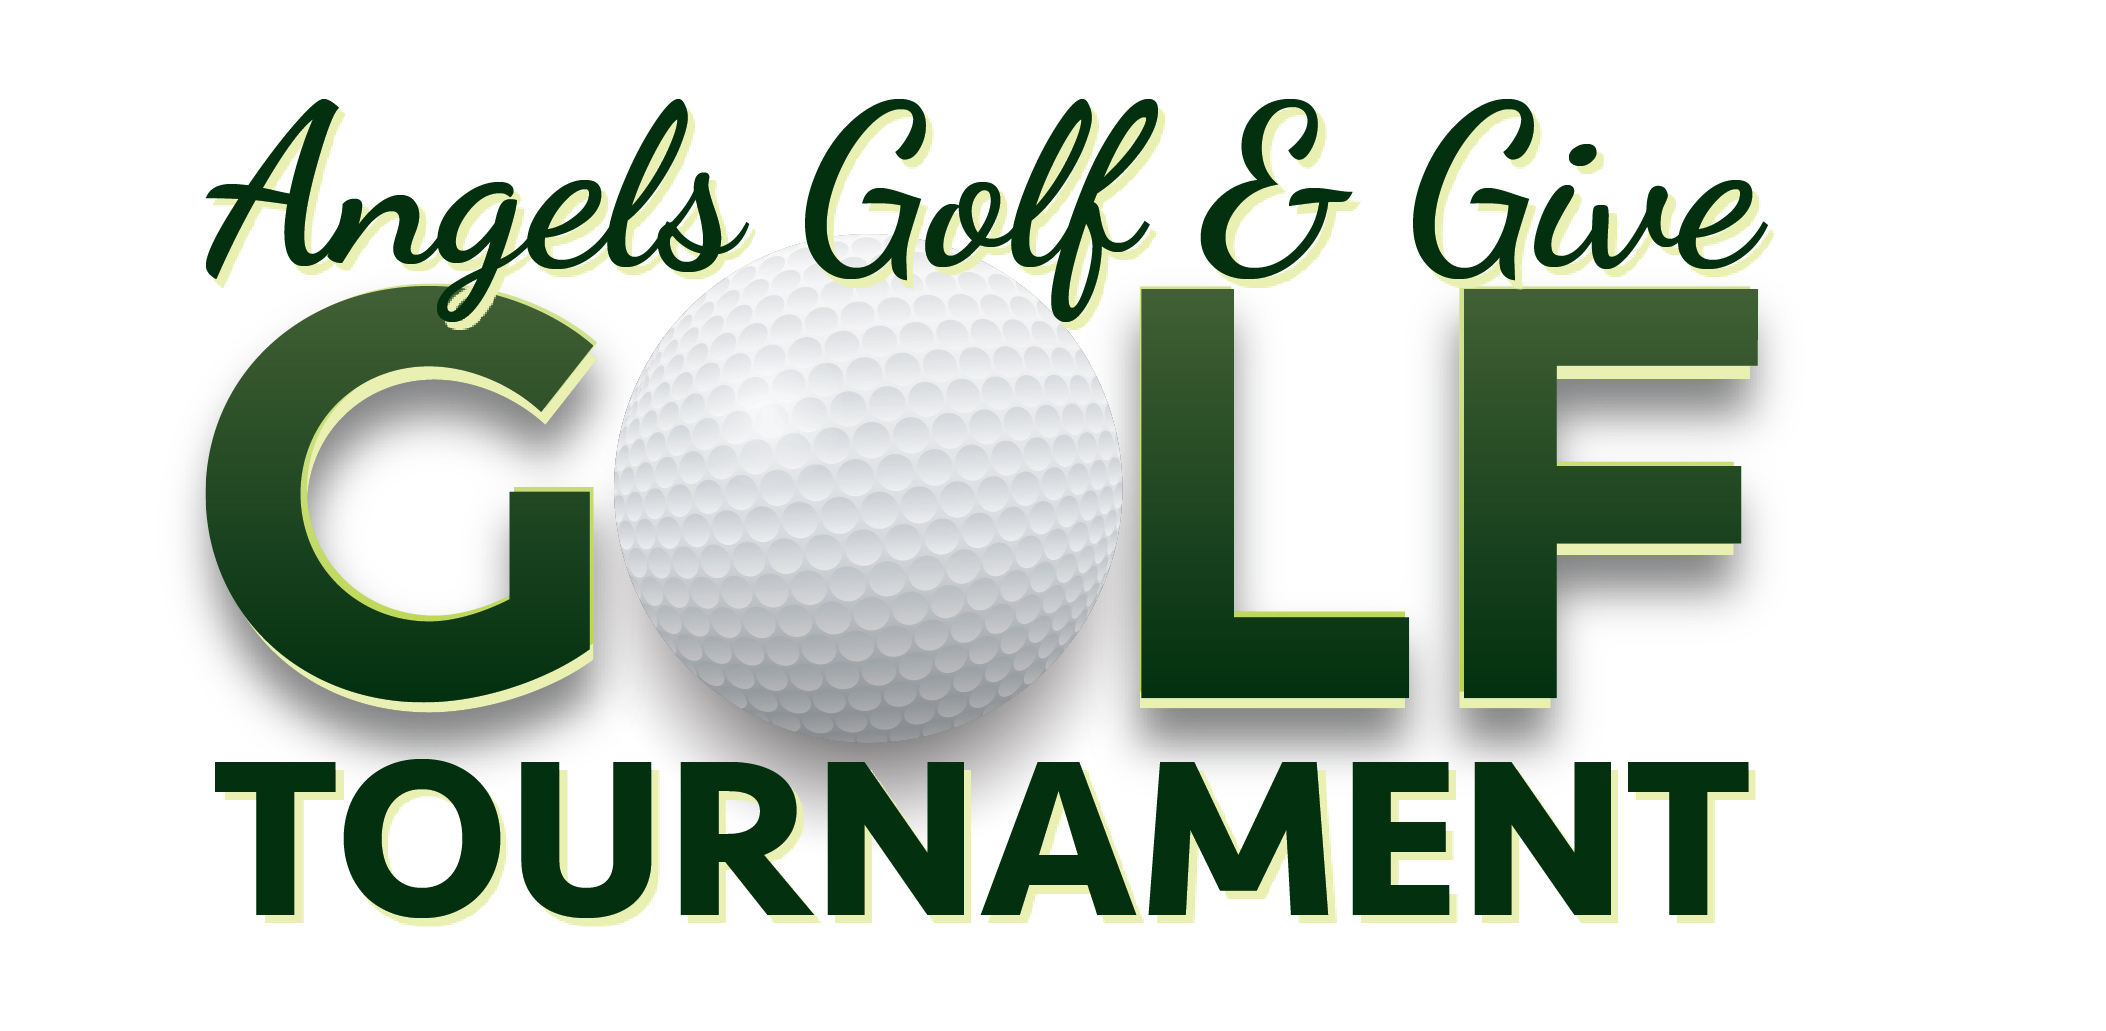 Angels Golf & Give logo